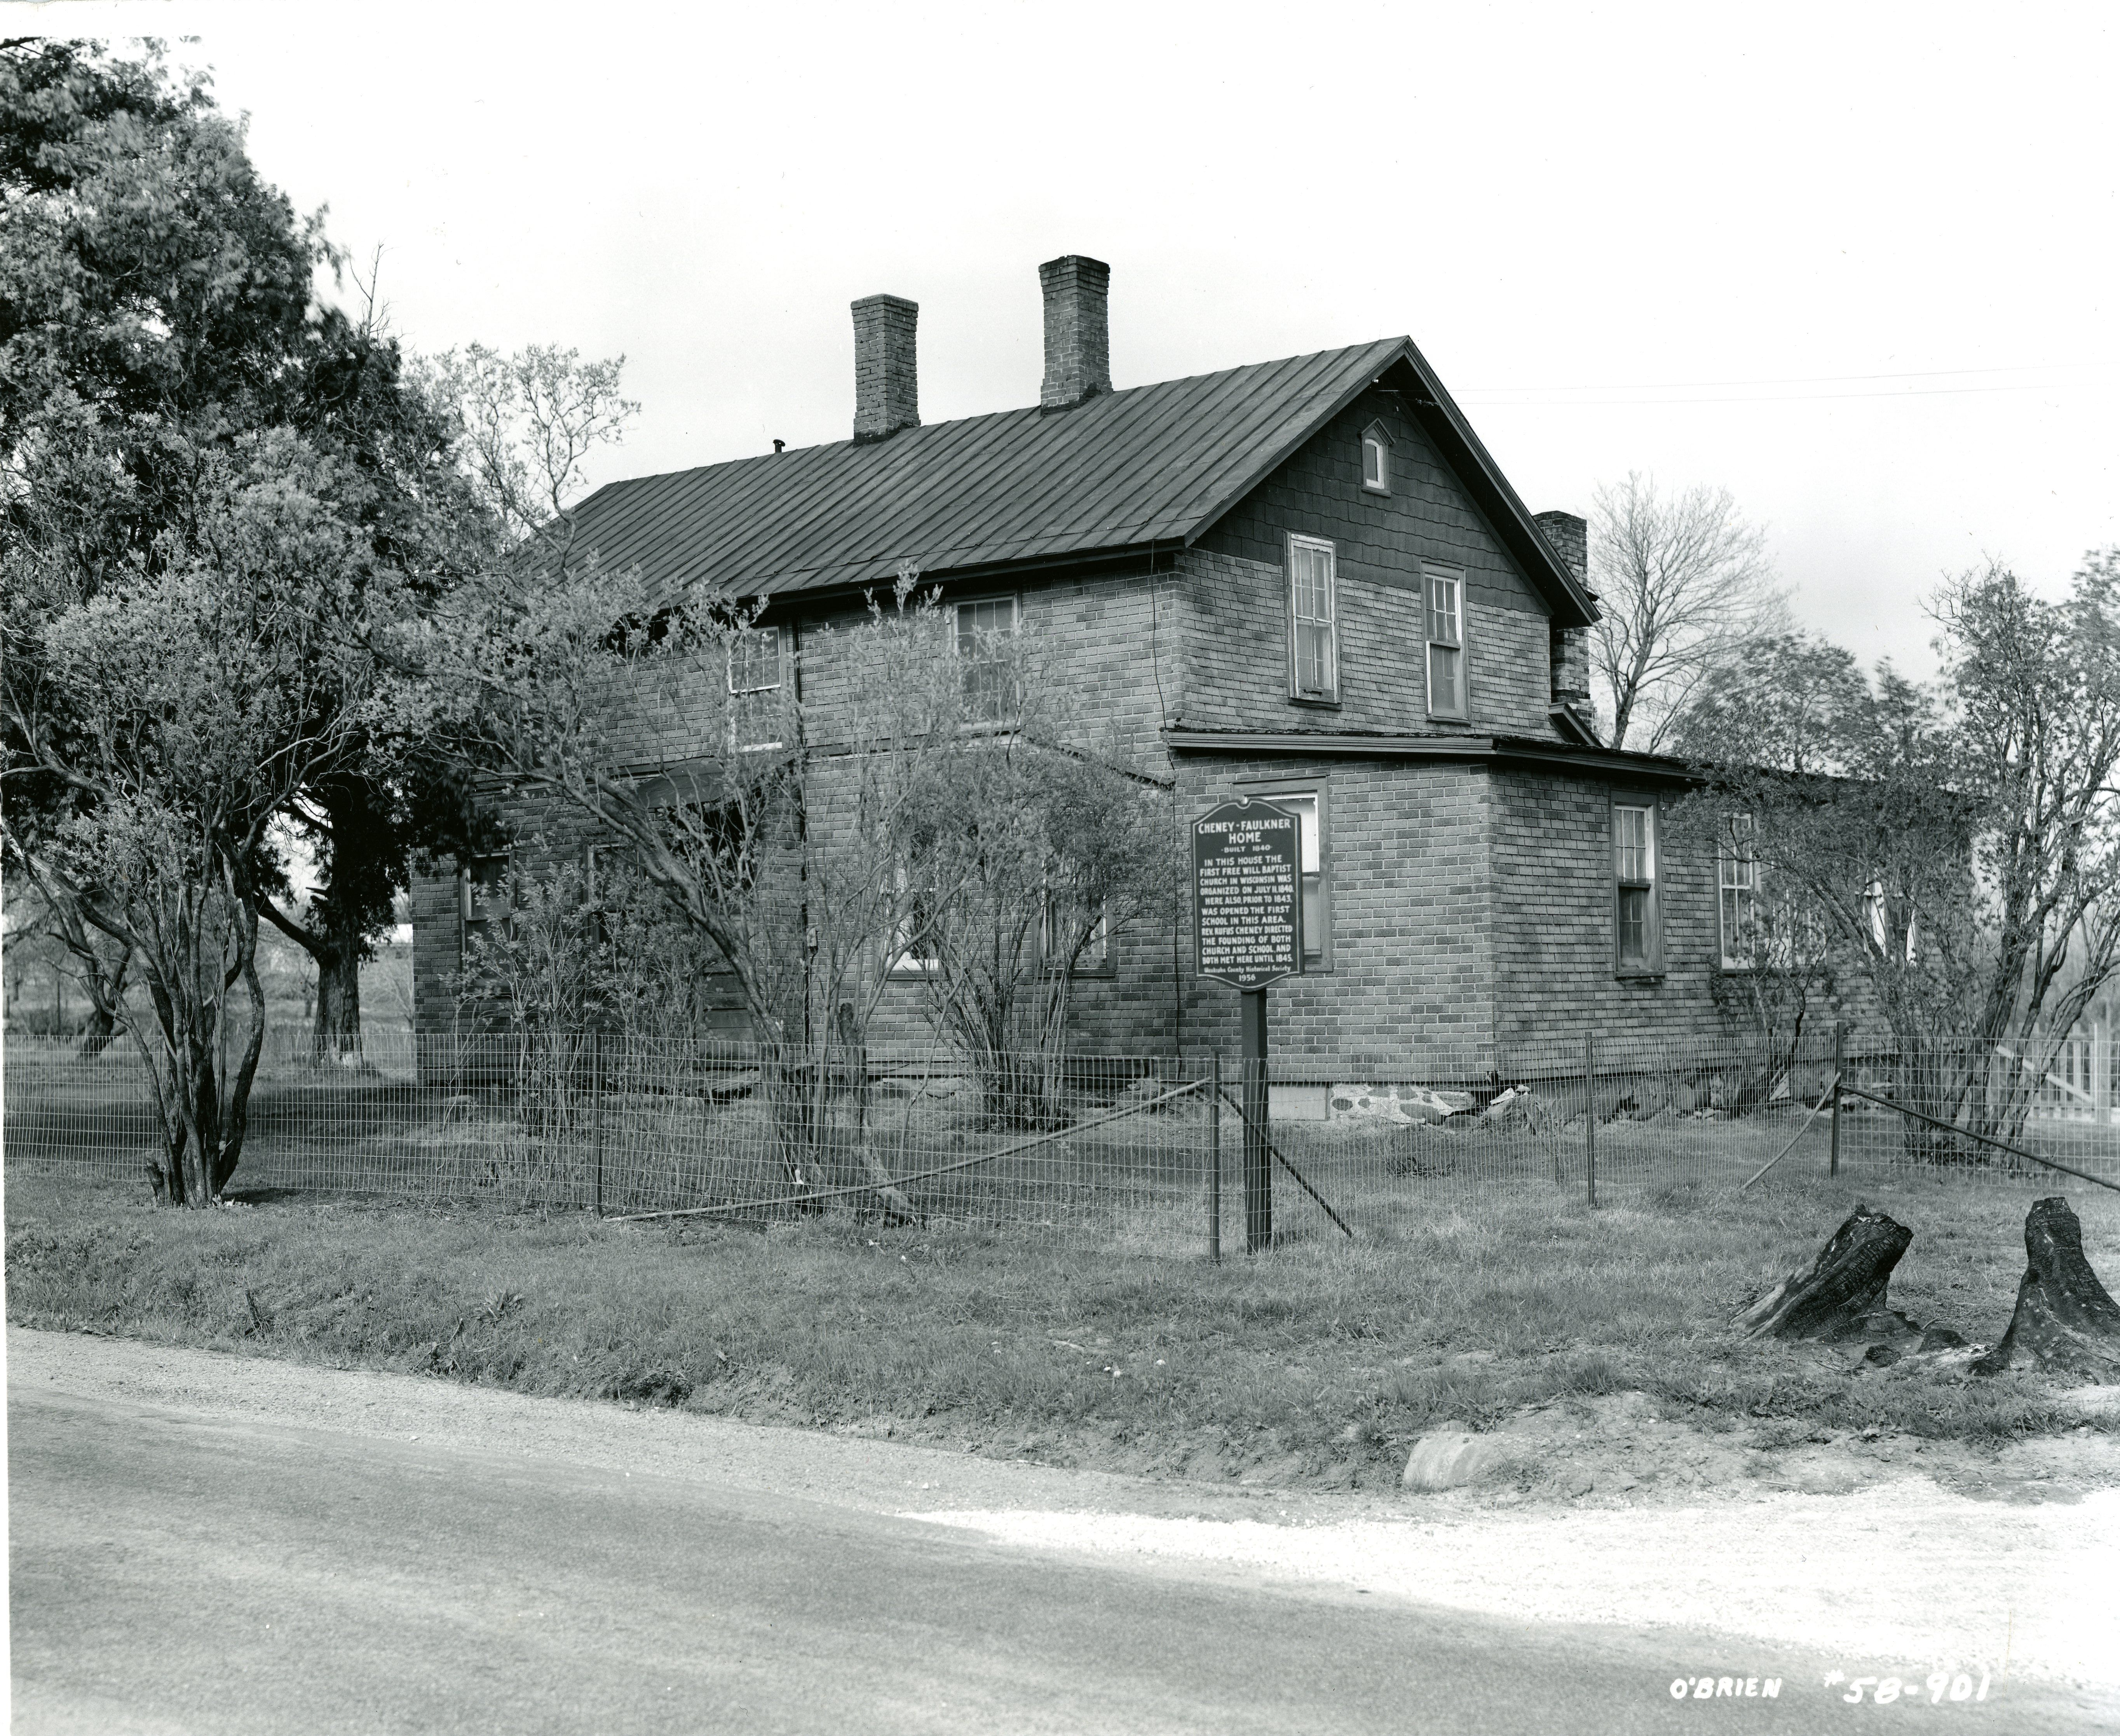 Cheney-Faulkner Cooper Home as it looked in 1958